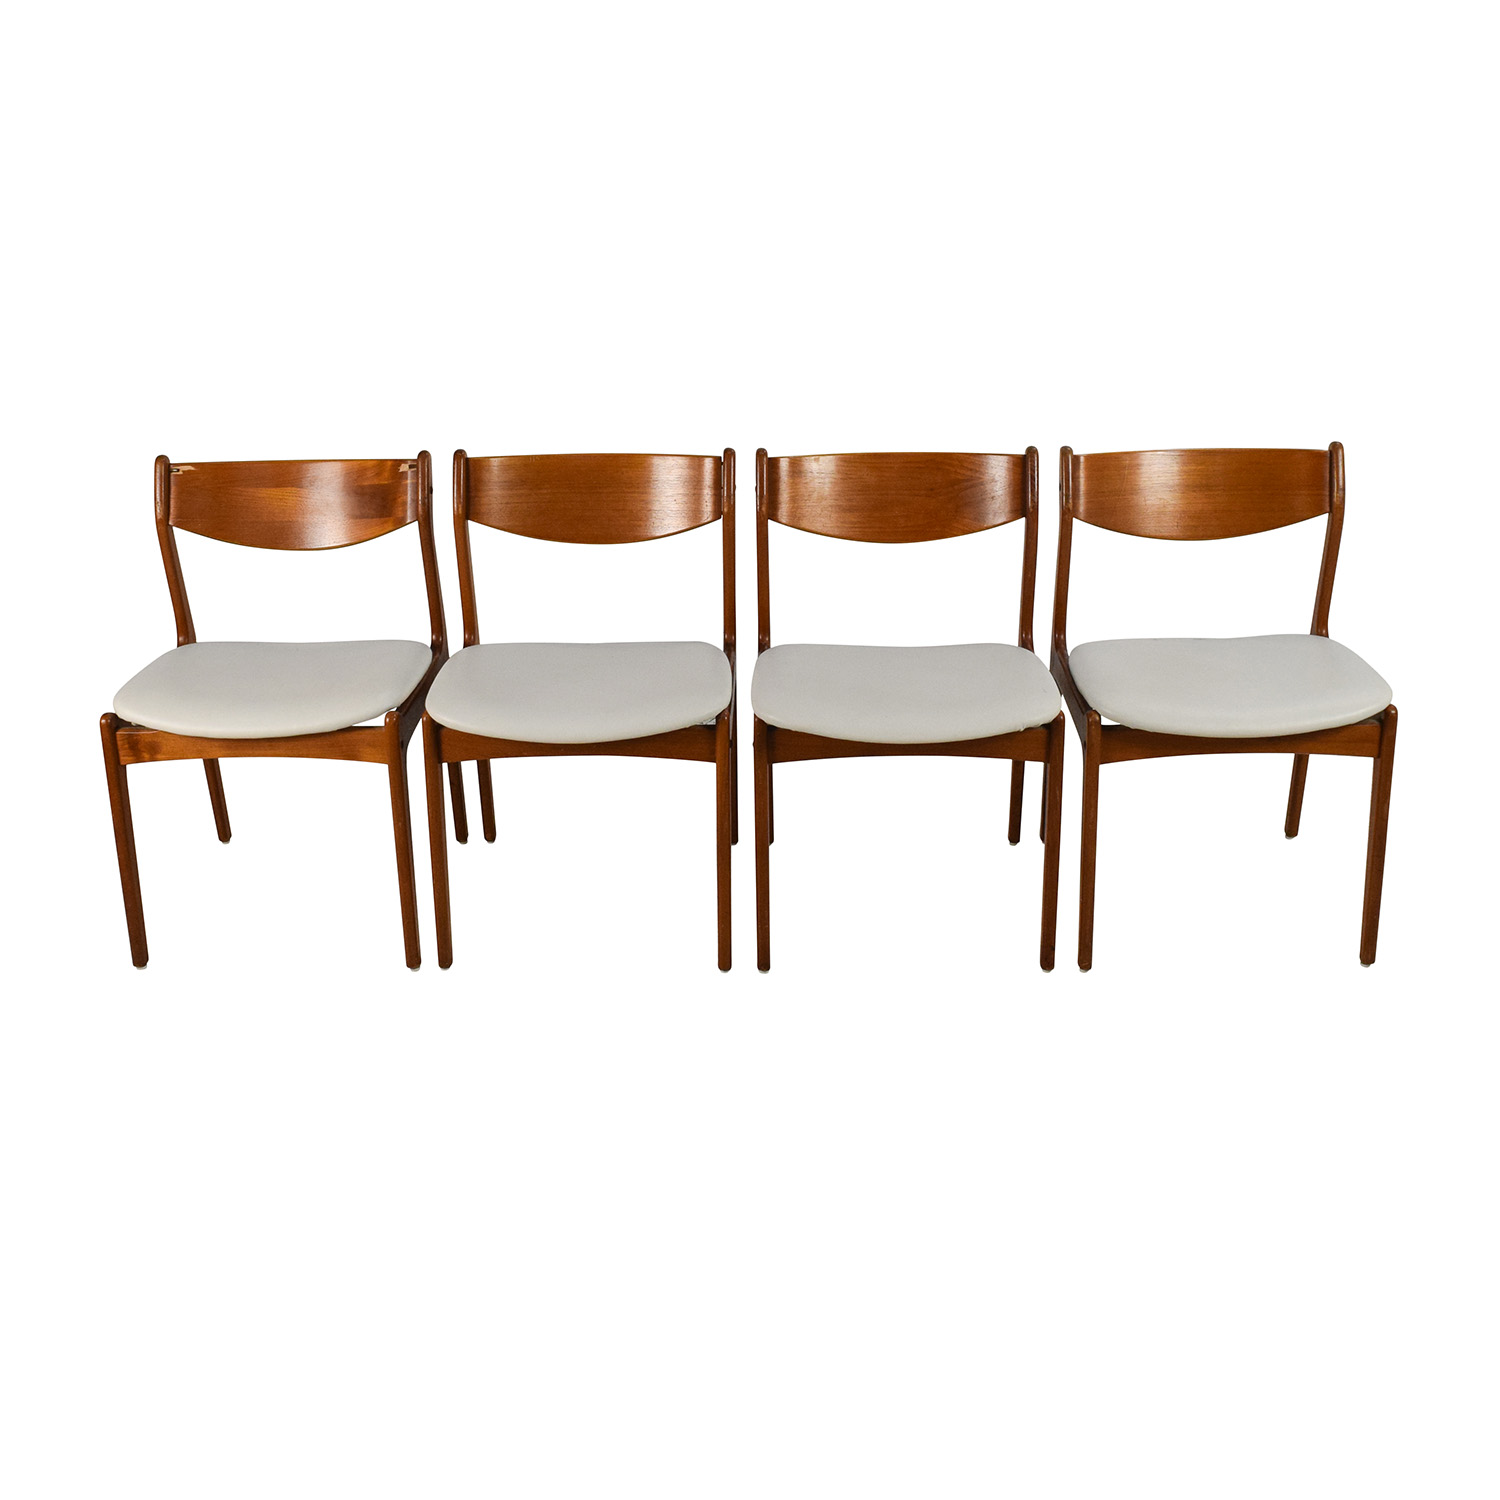 buy Farso Stolefabrik Danish Teak Chair Set Farso Stolefabrik Dining Chairs